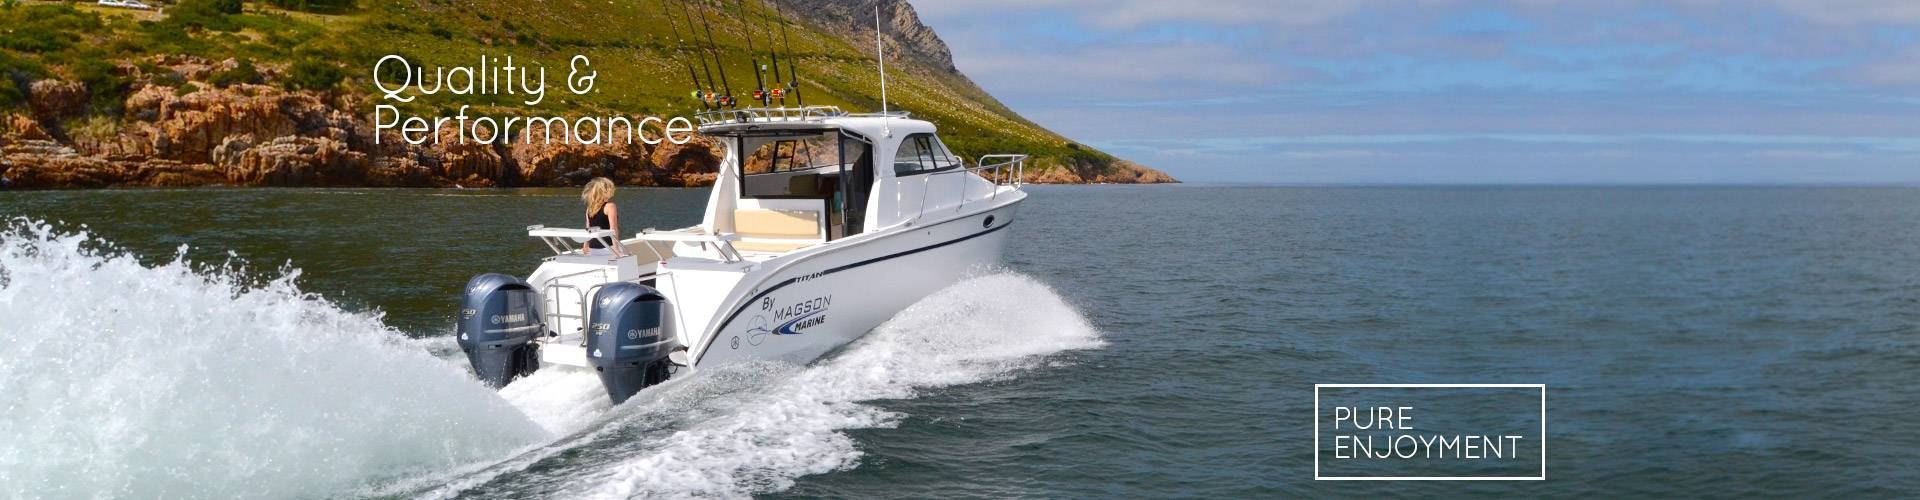 Titan 300 Express Cabin riding the waves in False Bay, South Africa